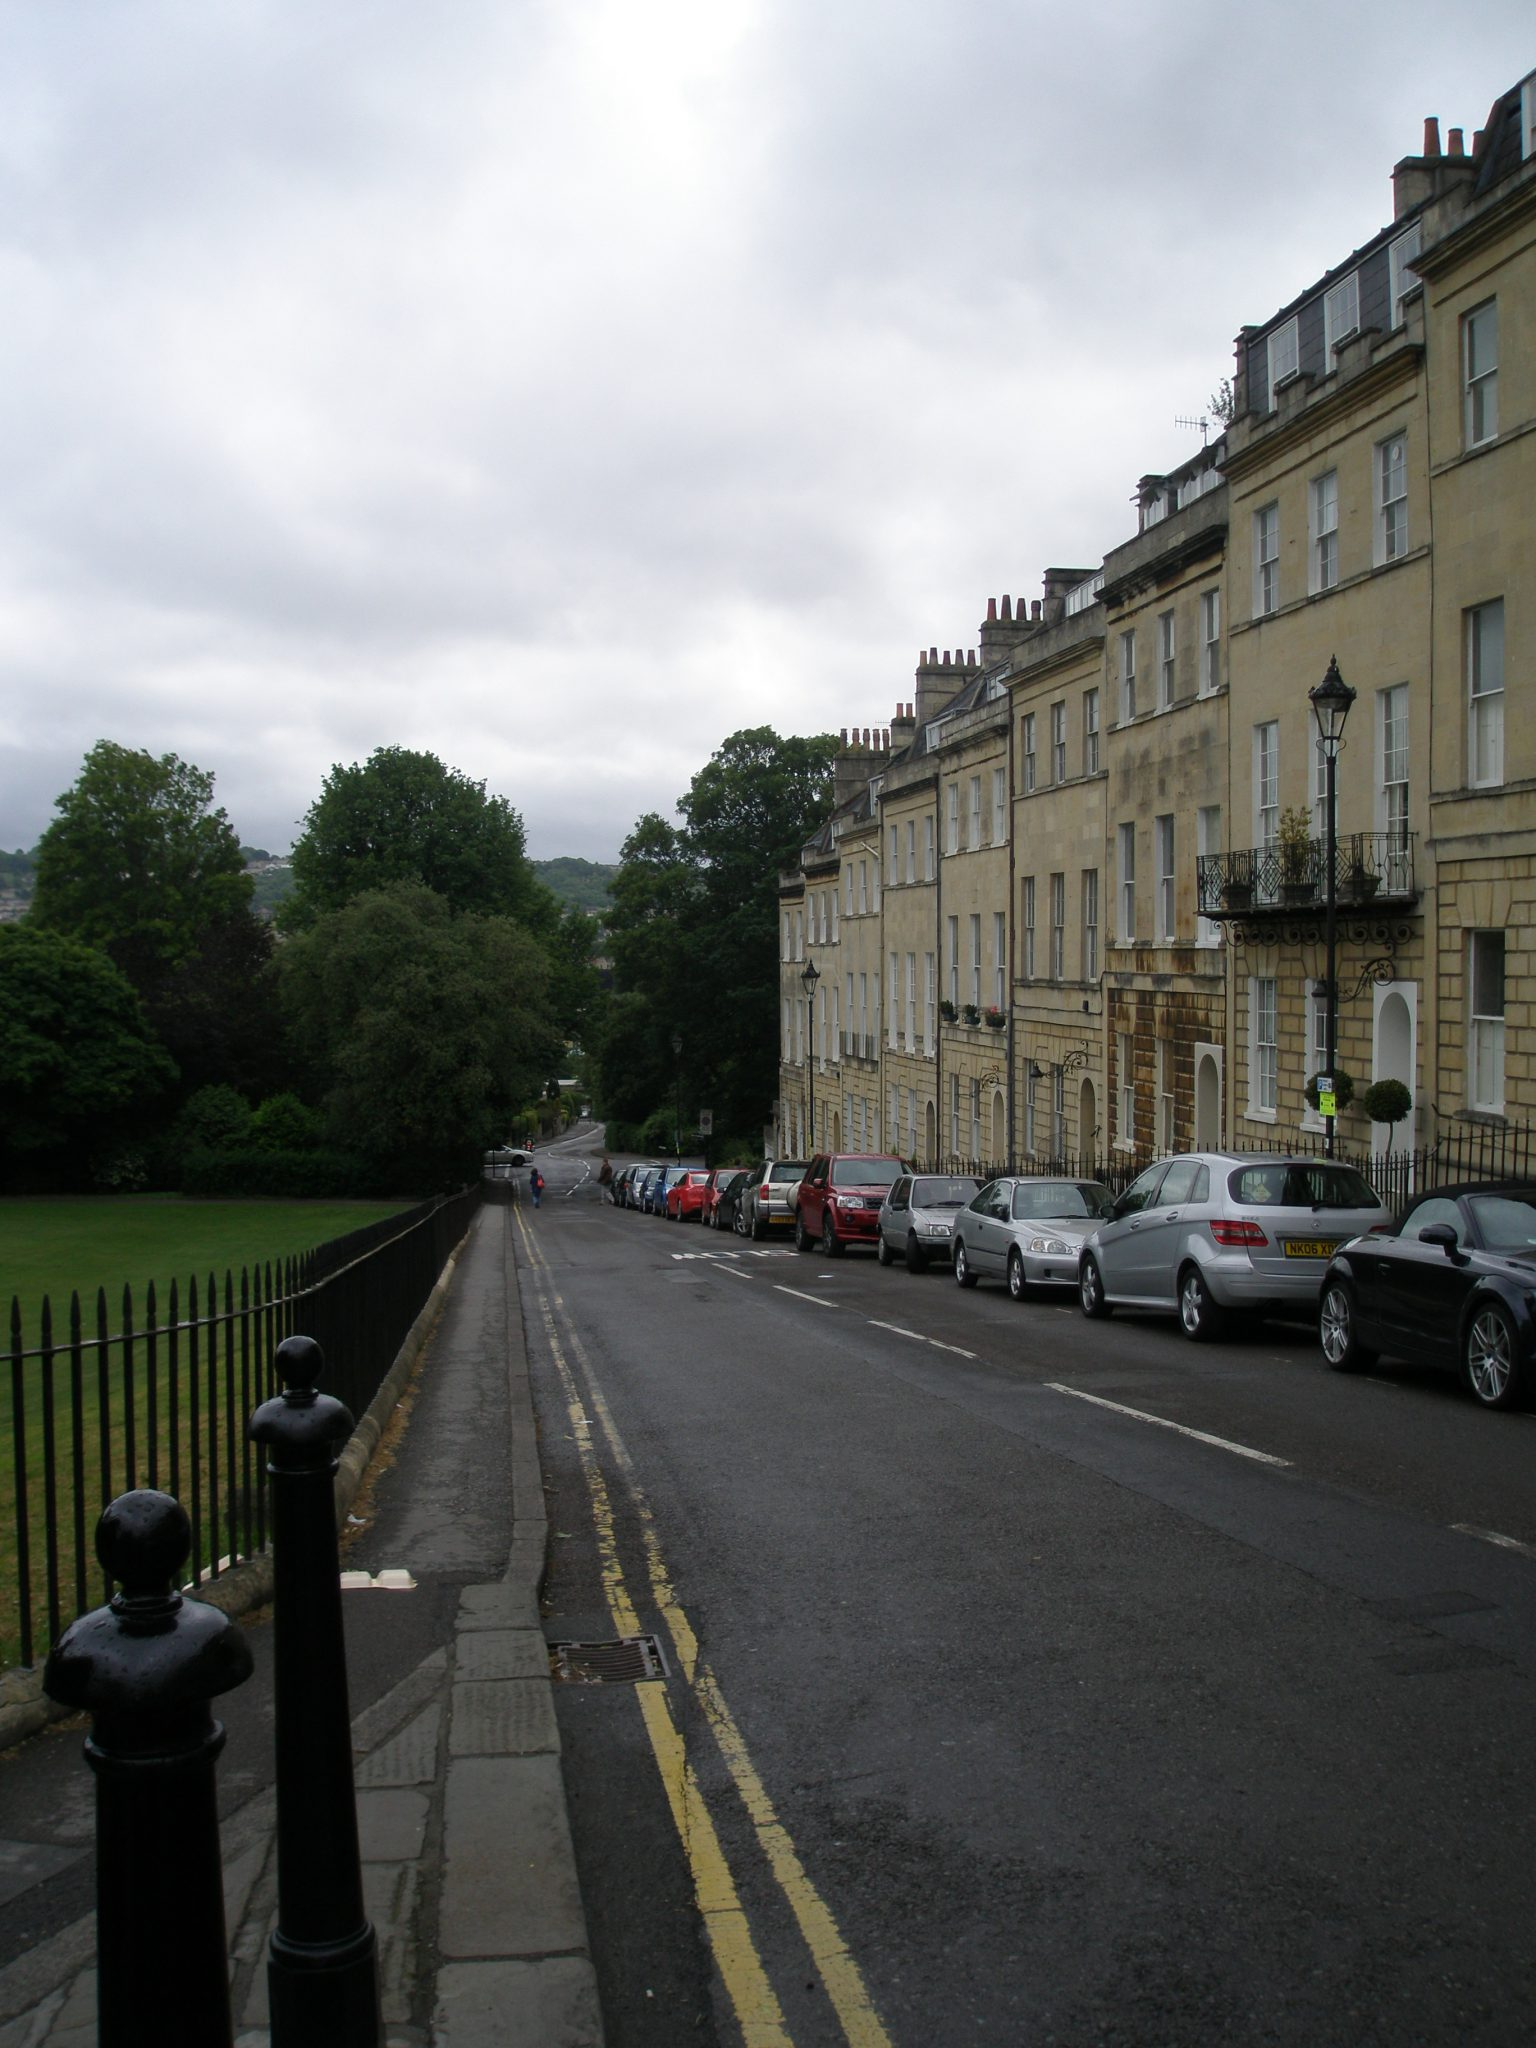 The Marlborough Buildings, downhill from Royal Crescent